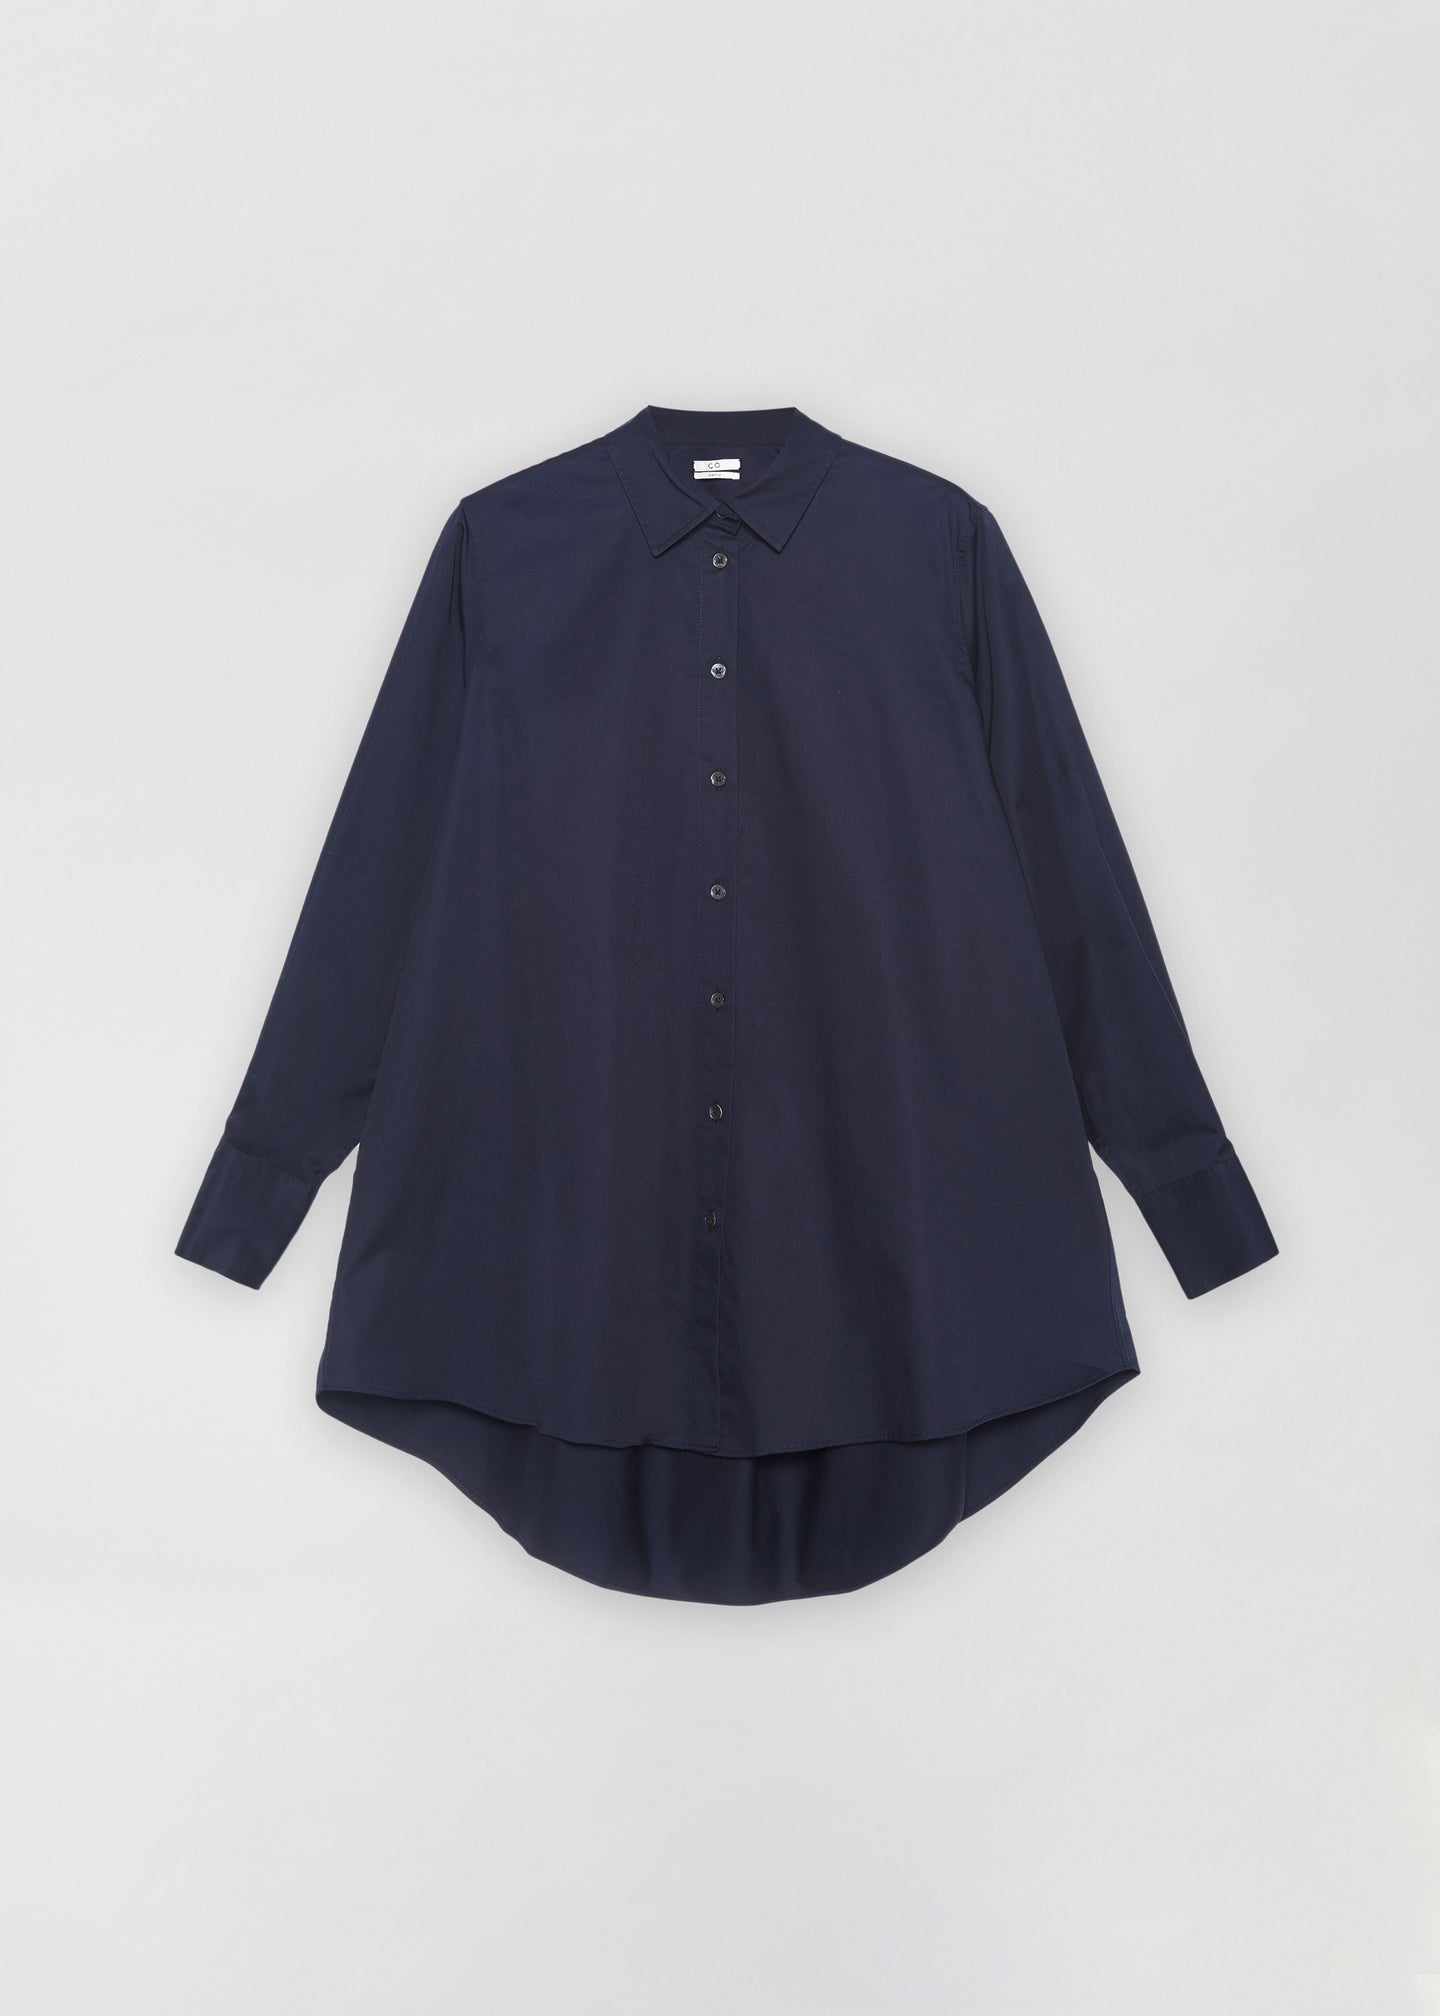 CO - A-Line Button Down Shirt in Cotton Poplin - Navy